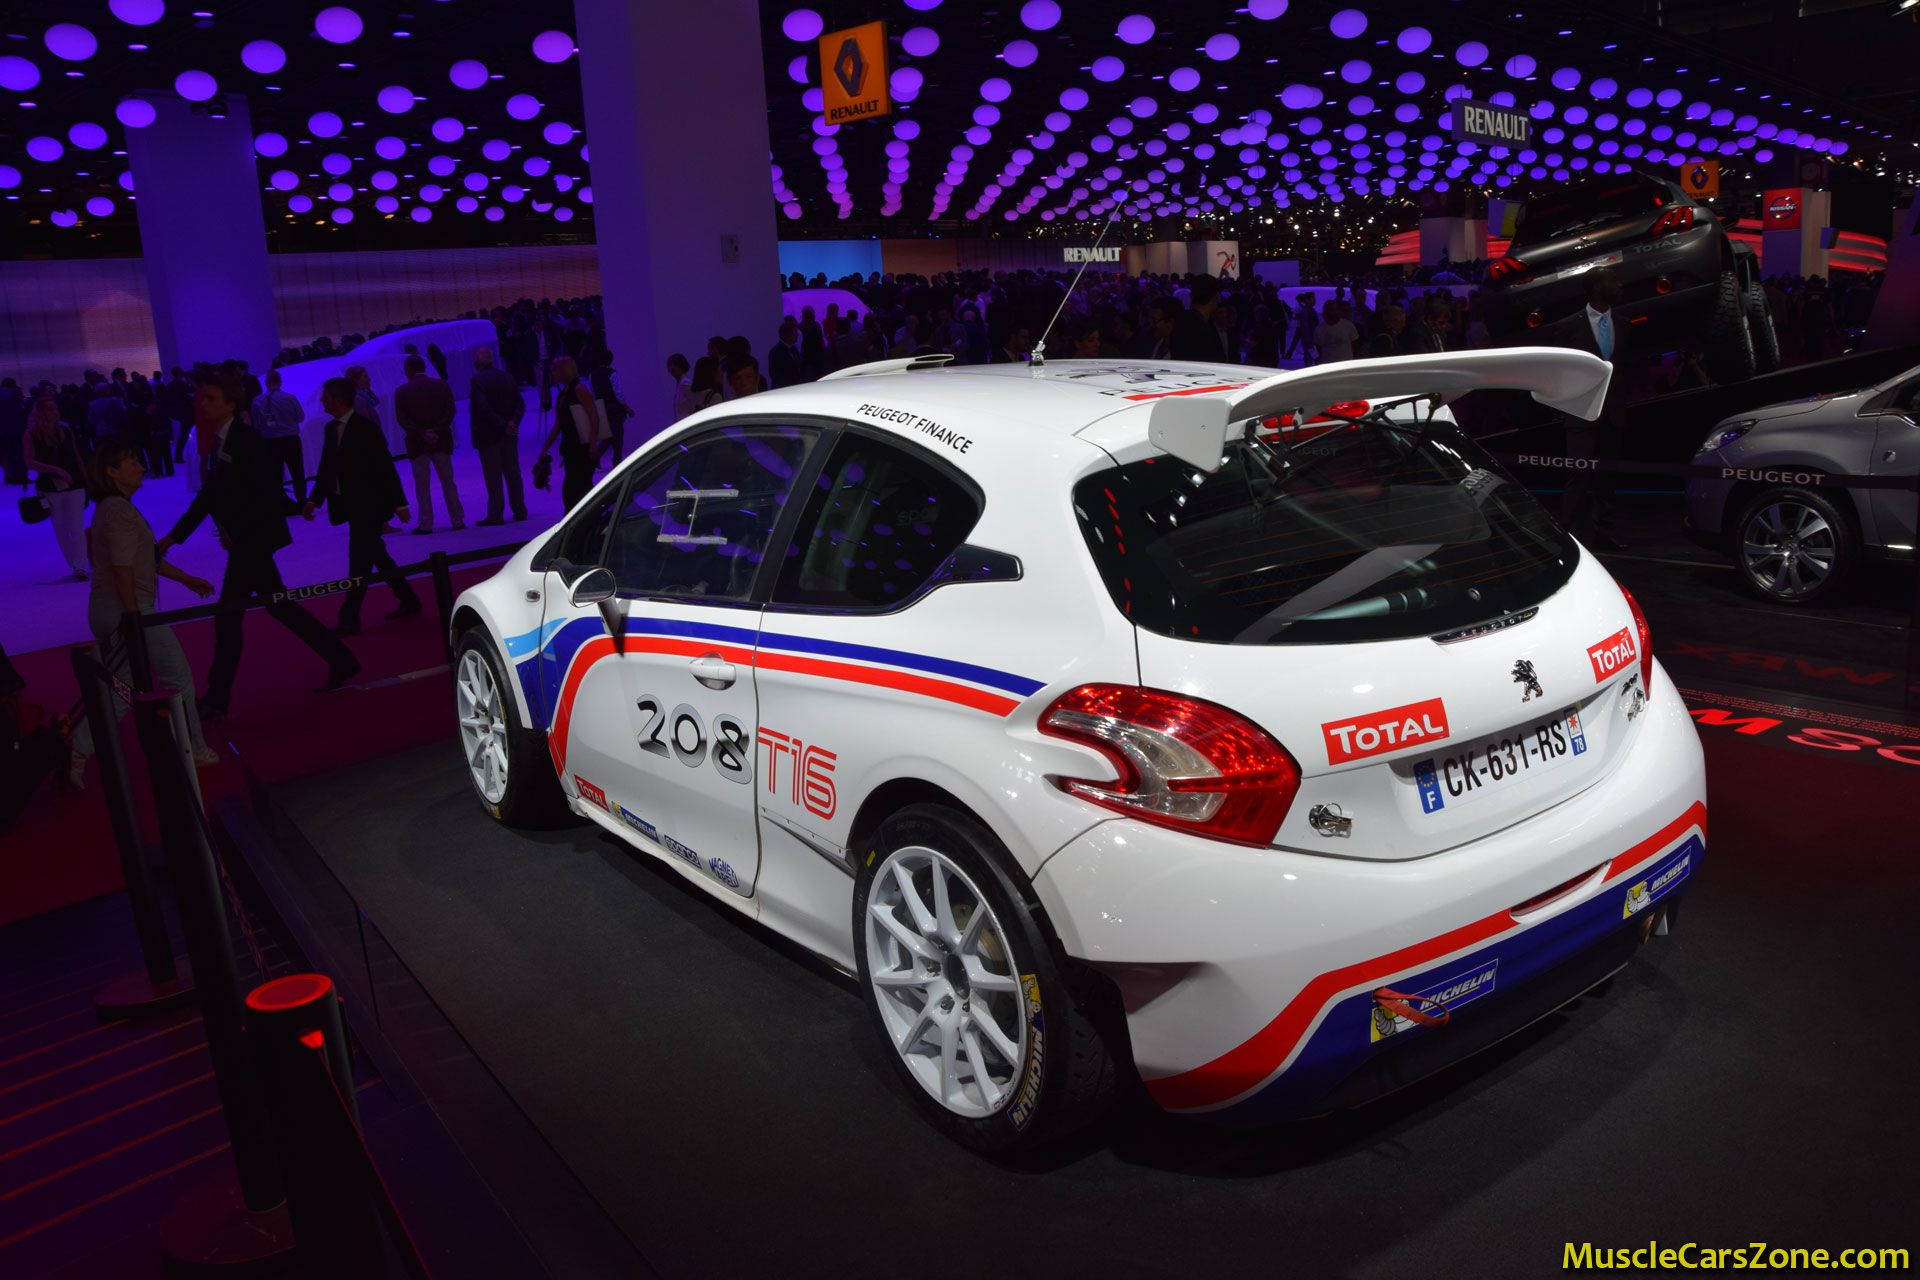 peugeot 208 wrc 2014 paris motor show 15 muscle cars zone. Black Bedroom Furniture Sets. Home Design Ideas